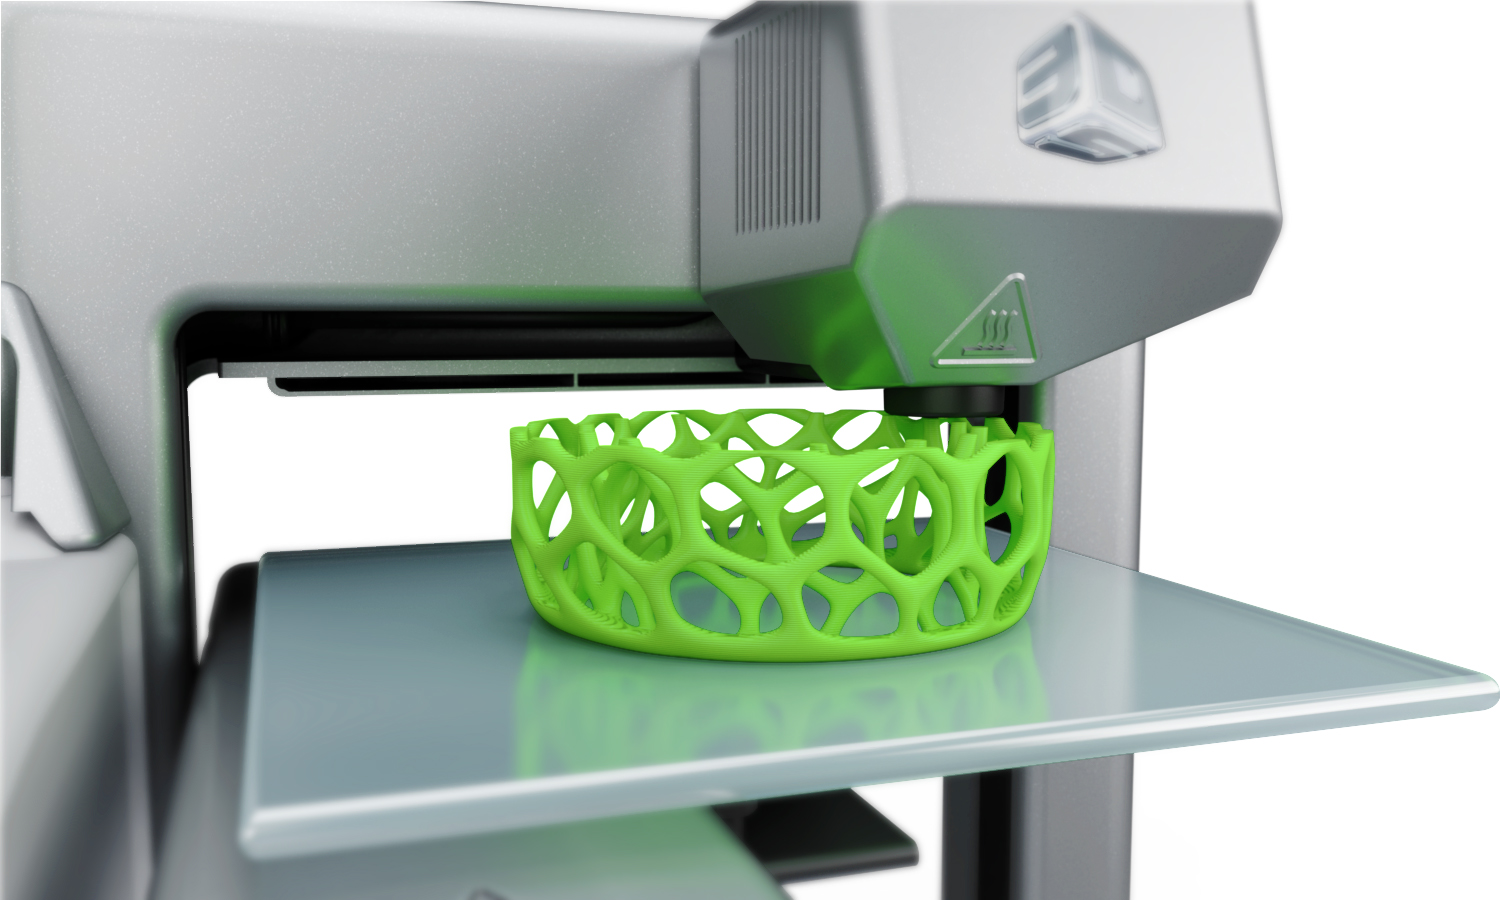 Image credit:    http://www.3d-print-works.com/3d-printing-technology-at-glasgow-university/